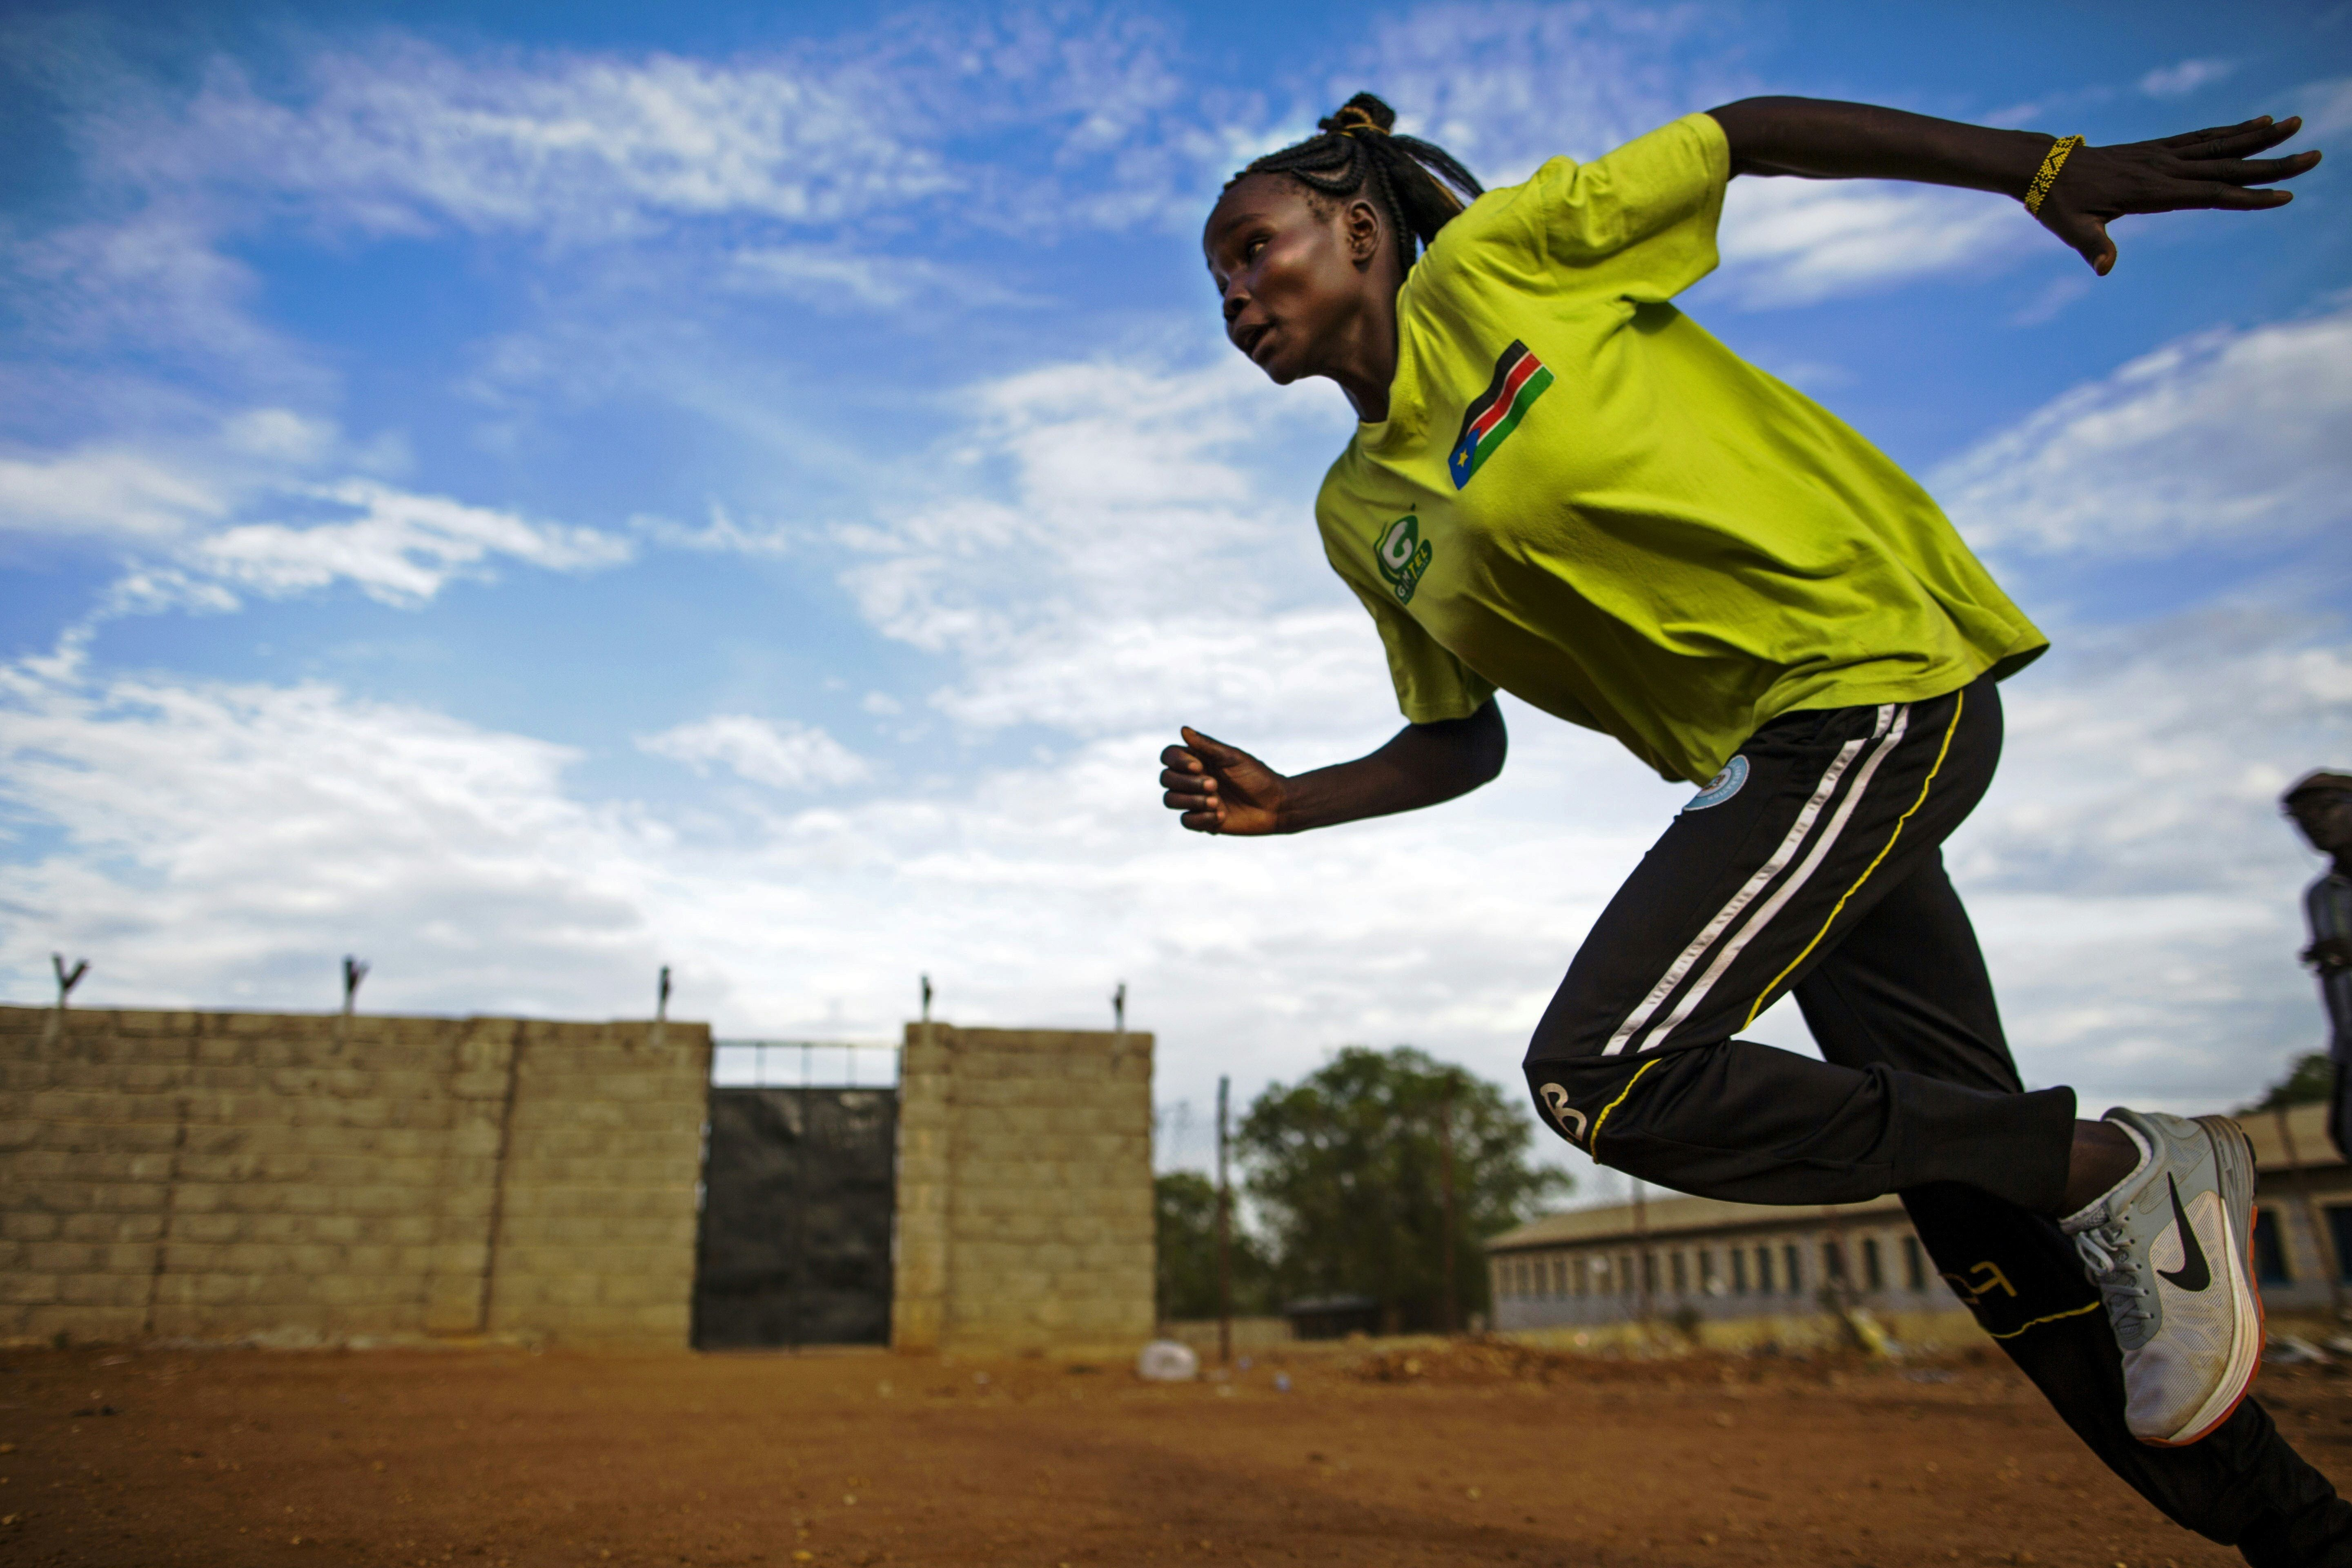 Margret Rumat Rumar Hassan, 19 years old, from Wau, South Sudan, trains at the open field of the Buluk Athletics Track in Juba, South Sudan, on March 18, 2016.  Margret is currently training to be qualified for the Summer Olympic Games in Rio de Janeiro 2016 in the 200 metre and 400 metre events. Margret has already taken part in the Summer Youth Olympic Games in Nanjing, China, in 2014, as independent athlete. Since the South Sudan National Olympic Committee (NOC) was admitted by the International Olympic Committee (IOC) at the 128th IOC Session on 2 August 2015, this is the first time the country will be able to send its first athletes to the competition. Margret, who wants to become a teacher in the future, is still attending primary school because she missed more than 4 years education while she was displaced with her family during the war with Sudan. With five other brothers and sisters, Margret is struggling to convince her mother to go to the Olympics because she would like her to remain at home. AFP PHOTO / ALBERT GONZALEZ FARRAN / AFP / ALBERT GONZALEZ FARRAN        (Photo credit should read ALBERT GONZALEZ FARRAN/AFP/Getty Images)